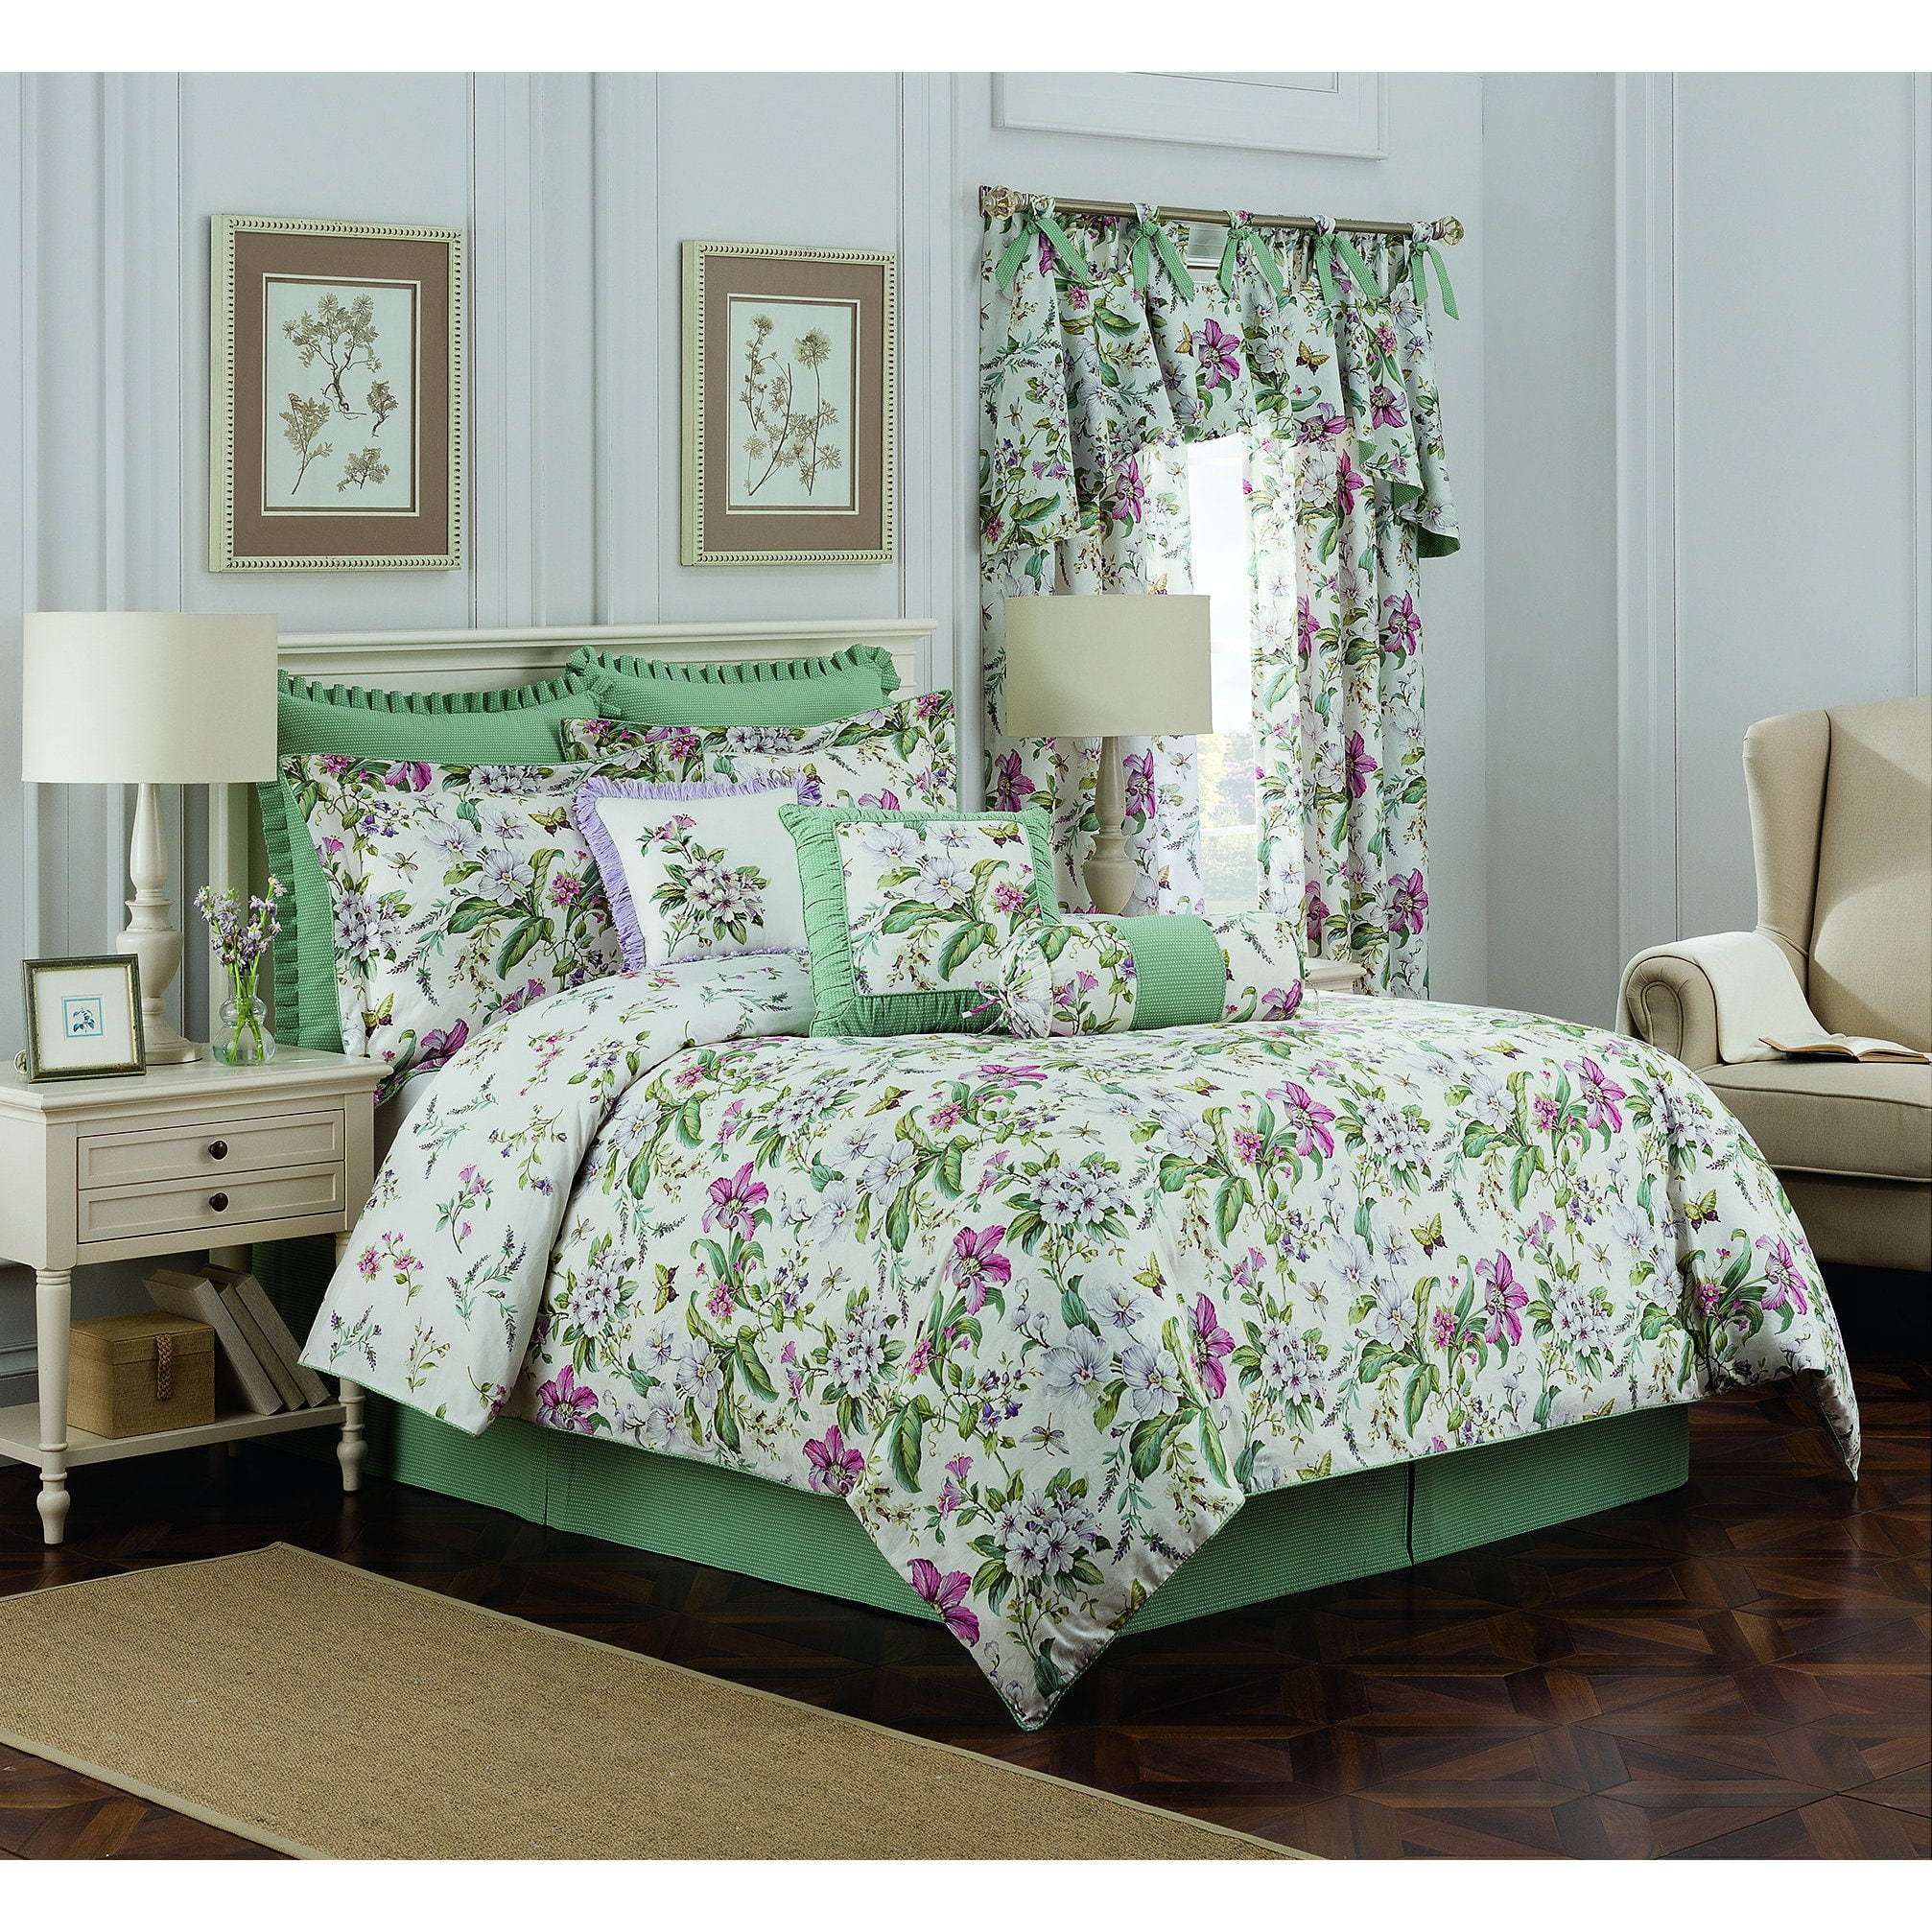 Royal Heritage Williamsburg Palace Green 4-Piece Full Comforter Set King